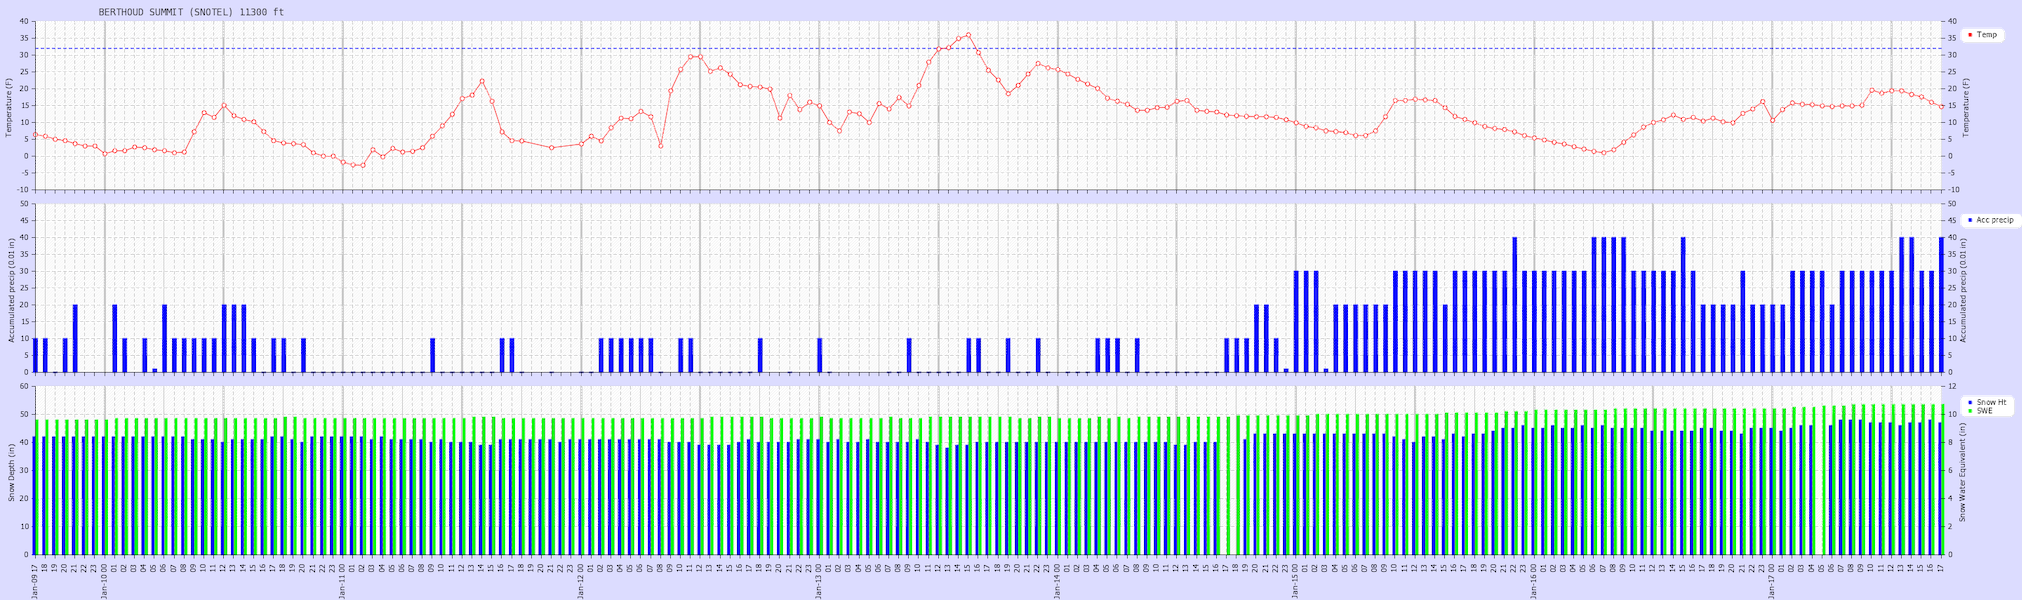 <b>Figure 15:</b> Weather graph from Berthoud Summit SNOTEL site 11,300 feet. This station is 7.5 miles to the west-southwest of the accident site. This is the closest precipitation station to the avalanche accident. In the week prior to the accident this station measured 0.8 inches of snow water equivalent. (<a href=javascript:void(0); onClick=win=window.open('https://caic-production.imgix.net/4xsr6rhre1xsoxw4f685hos6hdzq?ixlib=php-3.1.0&s=c9d1f1634d800f8815e2302722670e24','caic_media','resizable=1,height=820,width=840,scrollbars=yes');win.focus();return false;>see full sized image</a>)